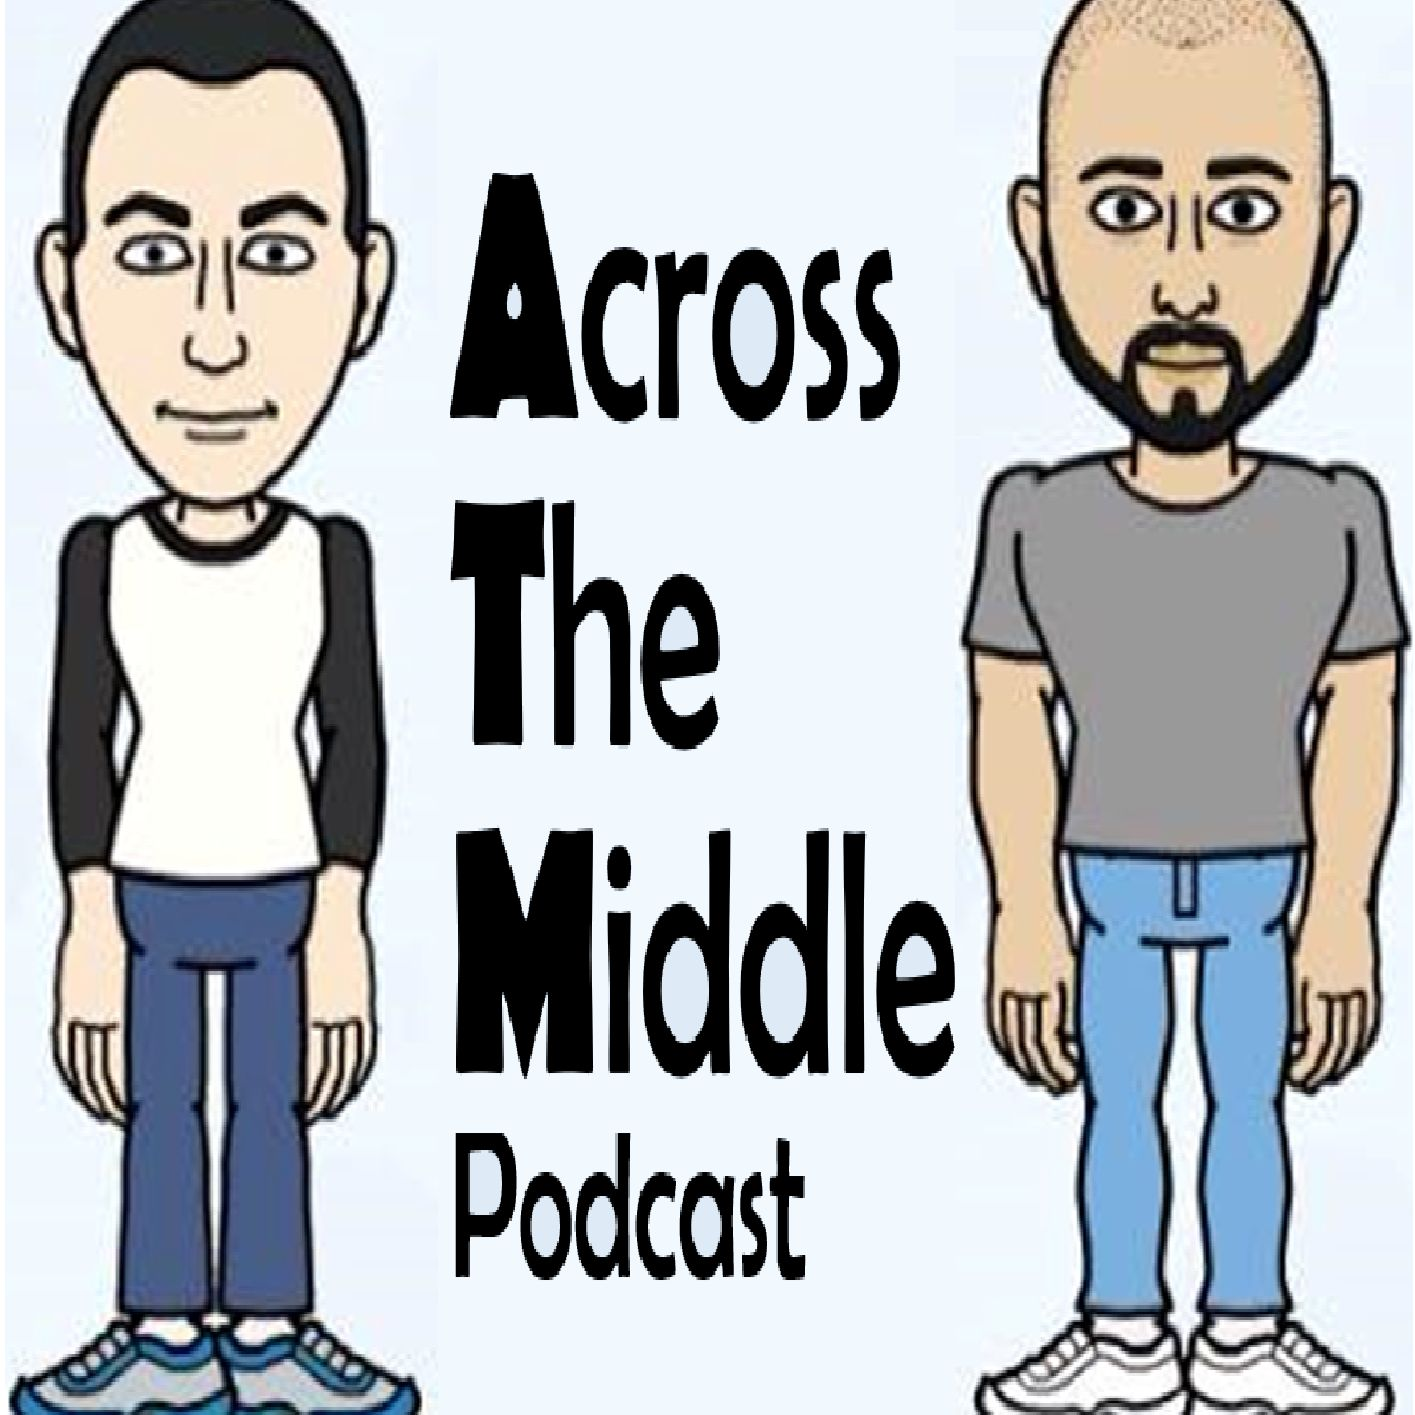 Across The Middle Podcast